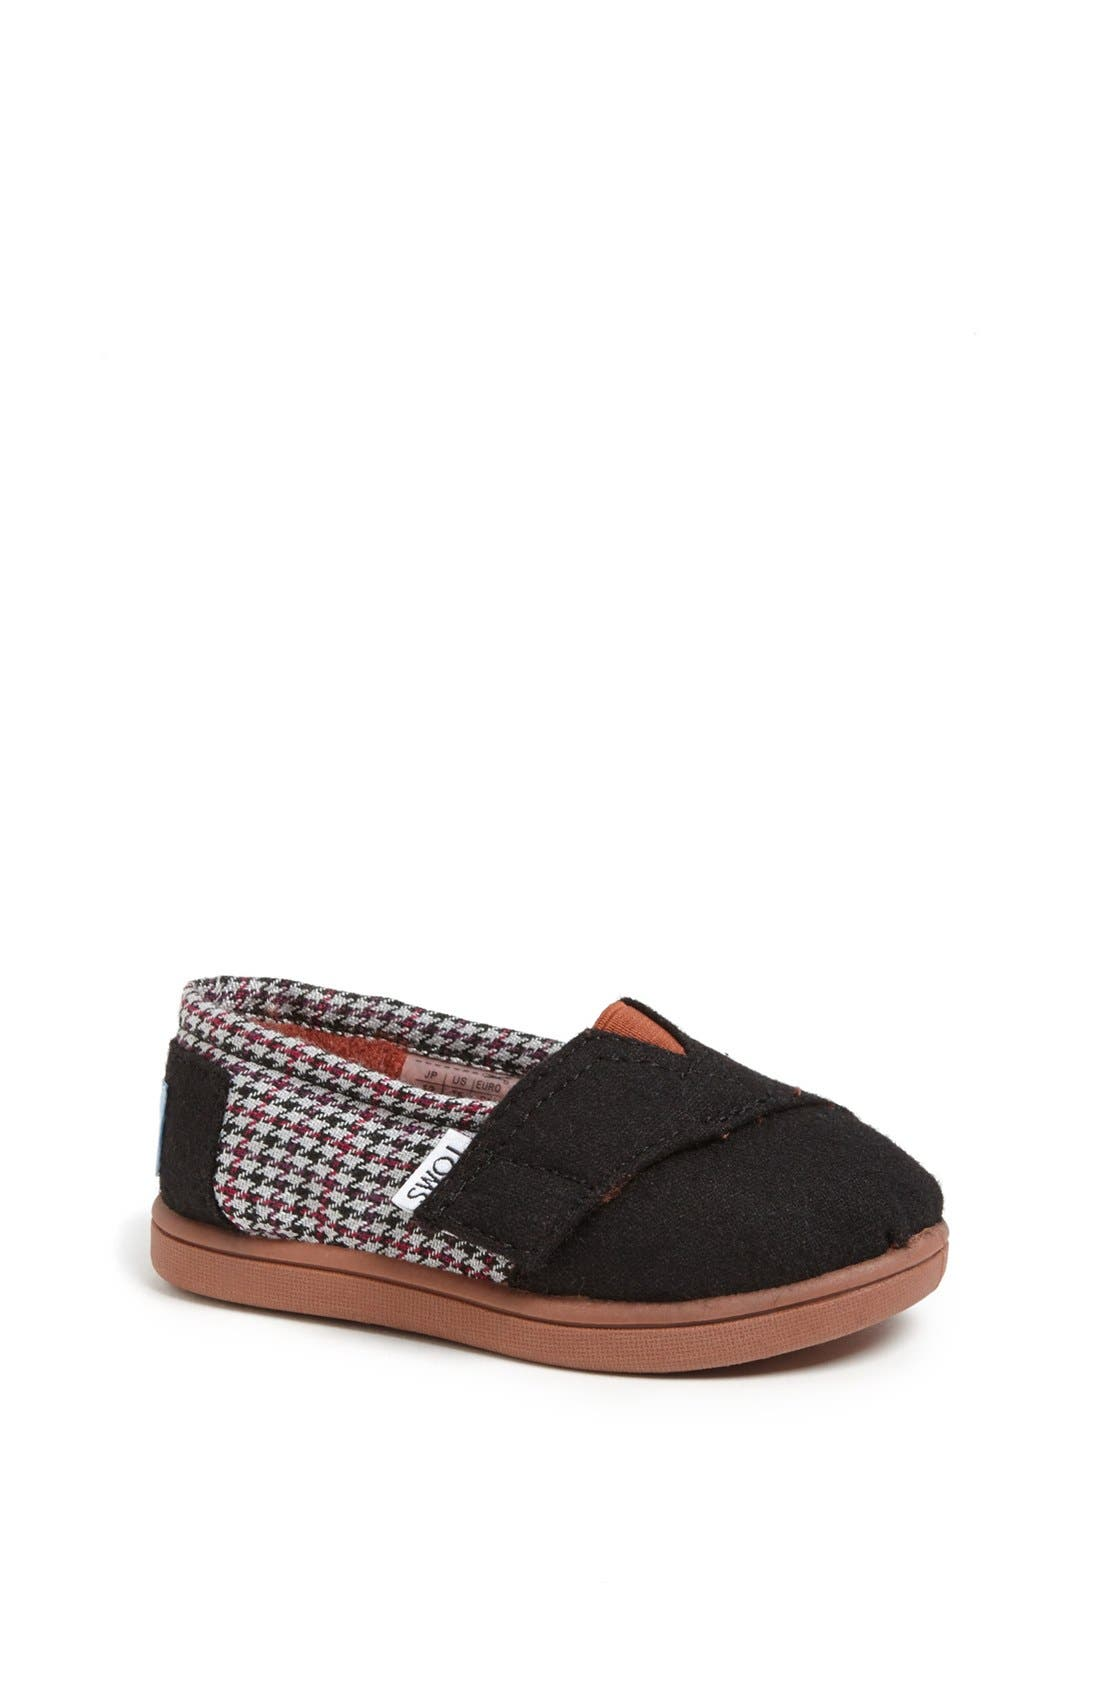 TOMS 'Classic - Tiny' Houndstooth Slip